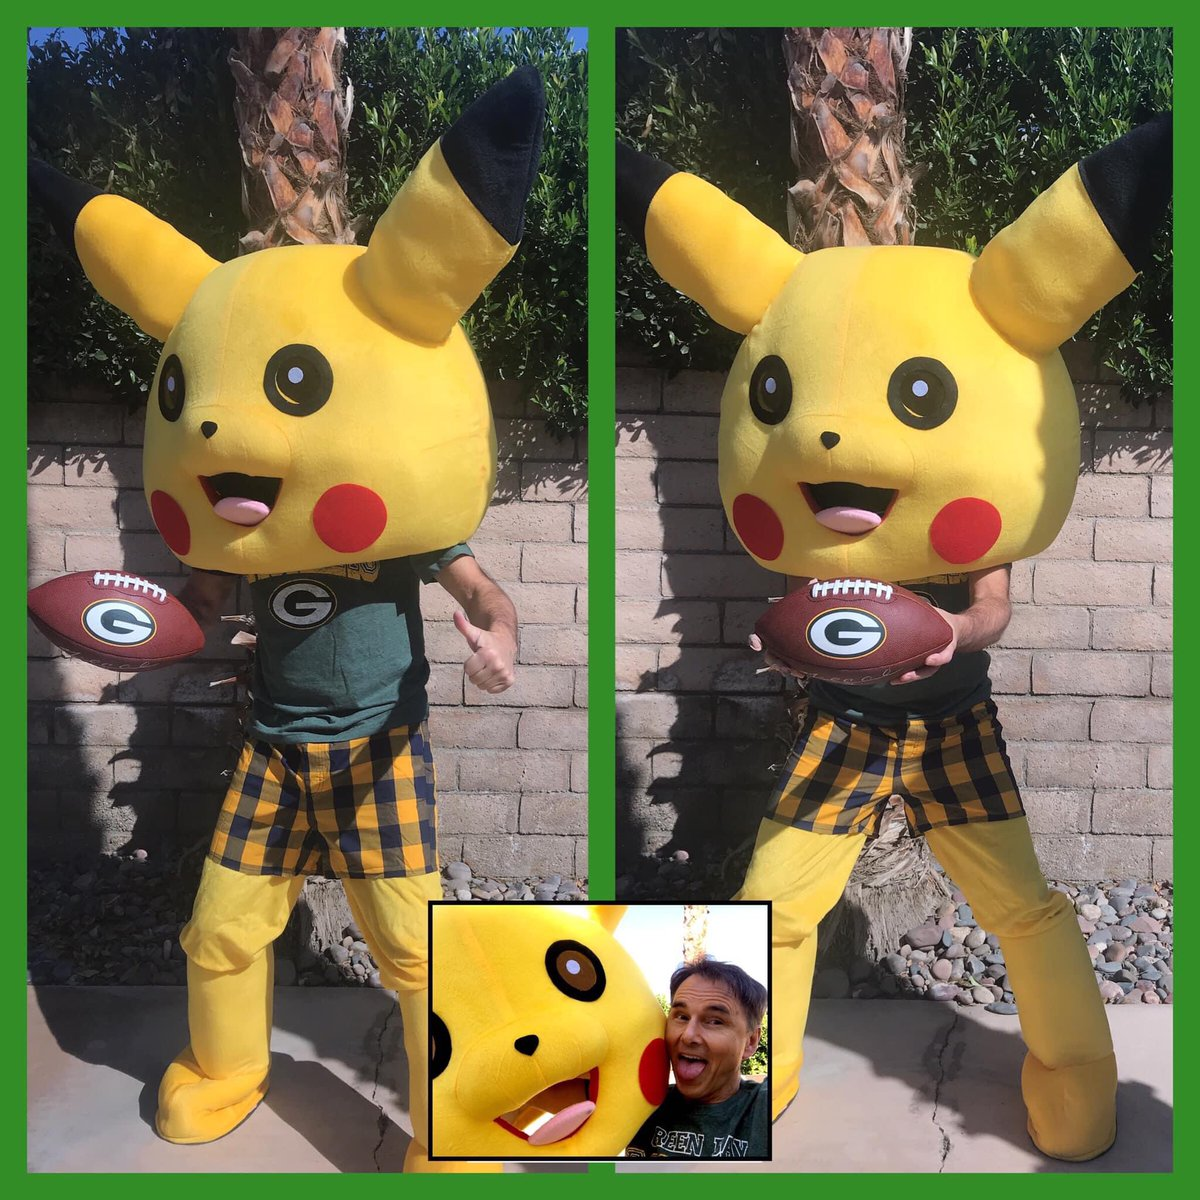 Packers! Playoffs! Packachu! Look who was in my backyard practicing the Packachu Polka before today's game vs the Rams. Cloudy, but warm with above-freezing weather at Lambeau. Green Bay temps will be hovering in the mid-30s! Perfect weather in Titletown! #GoPackGo! 💚💛🏈🍺🧀🐮